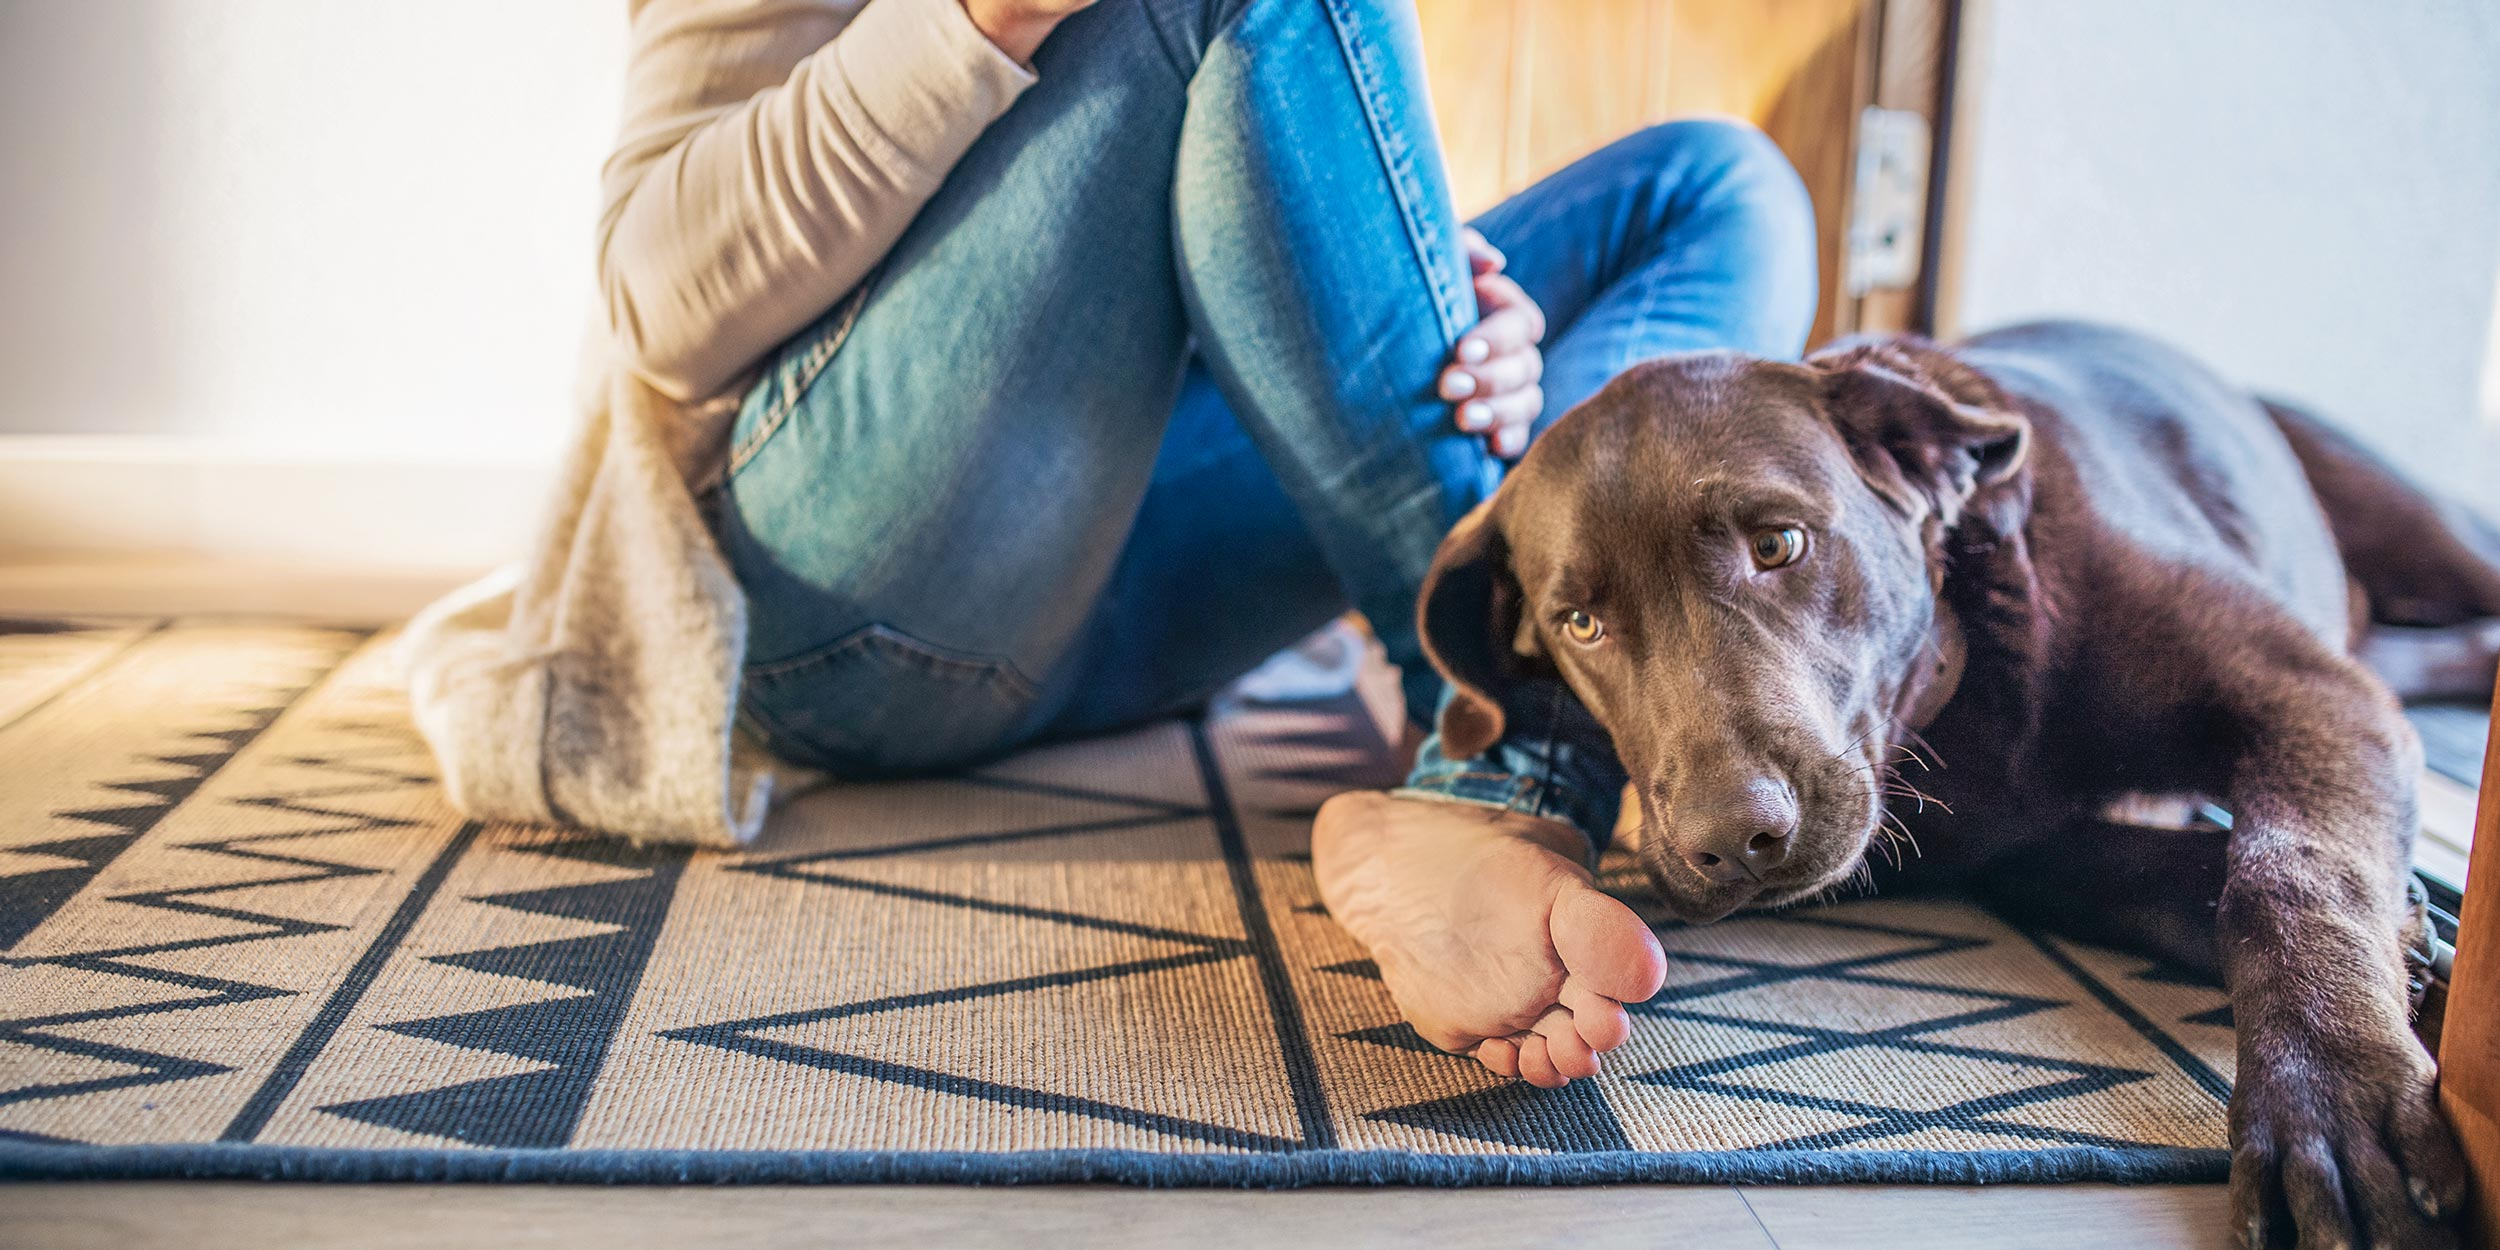 Top Rated Washable Rugs For Upgrading, Best Rugs For Living Room With Dogs